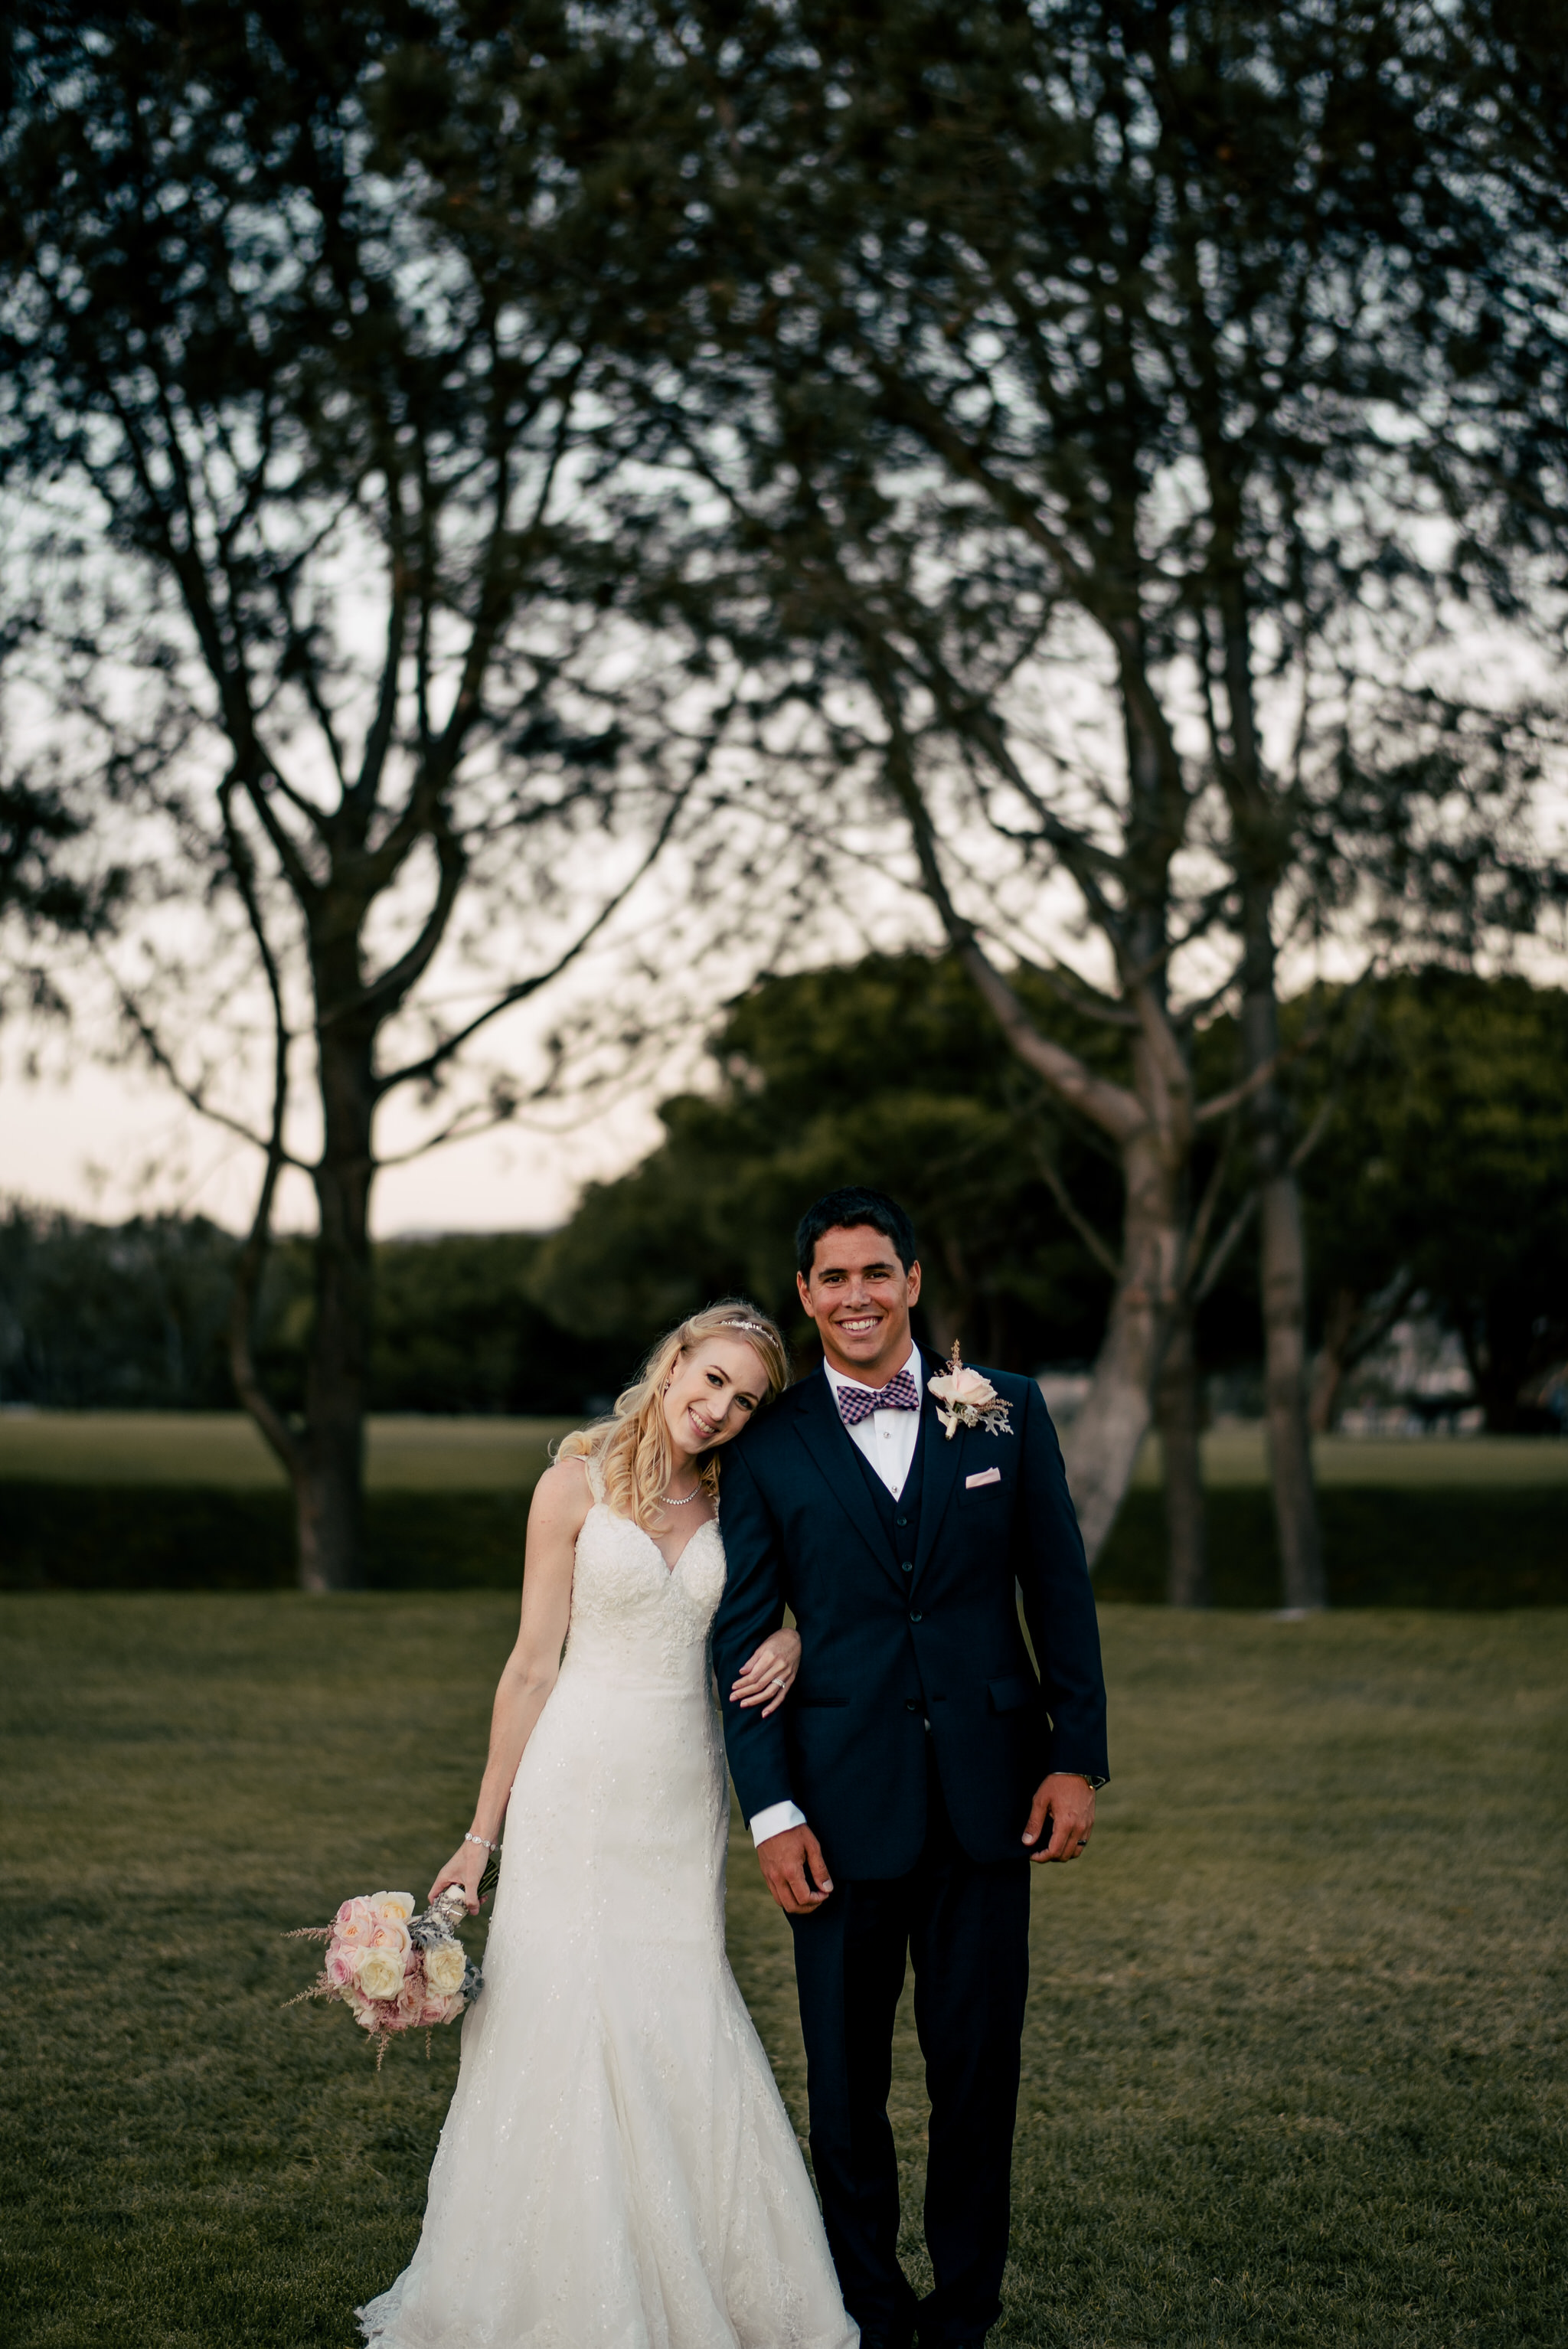 rsw-sean_jess-wedding-548